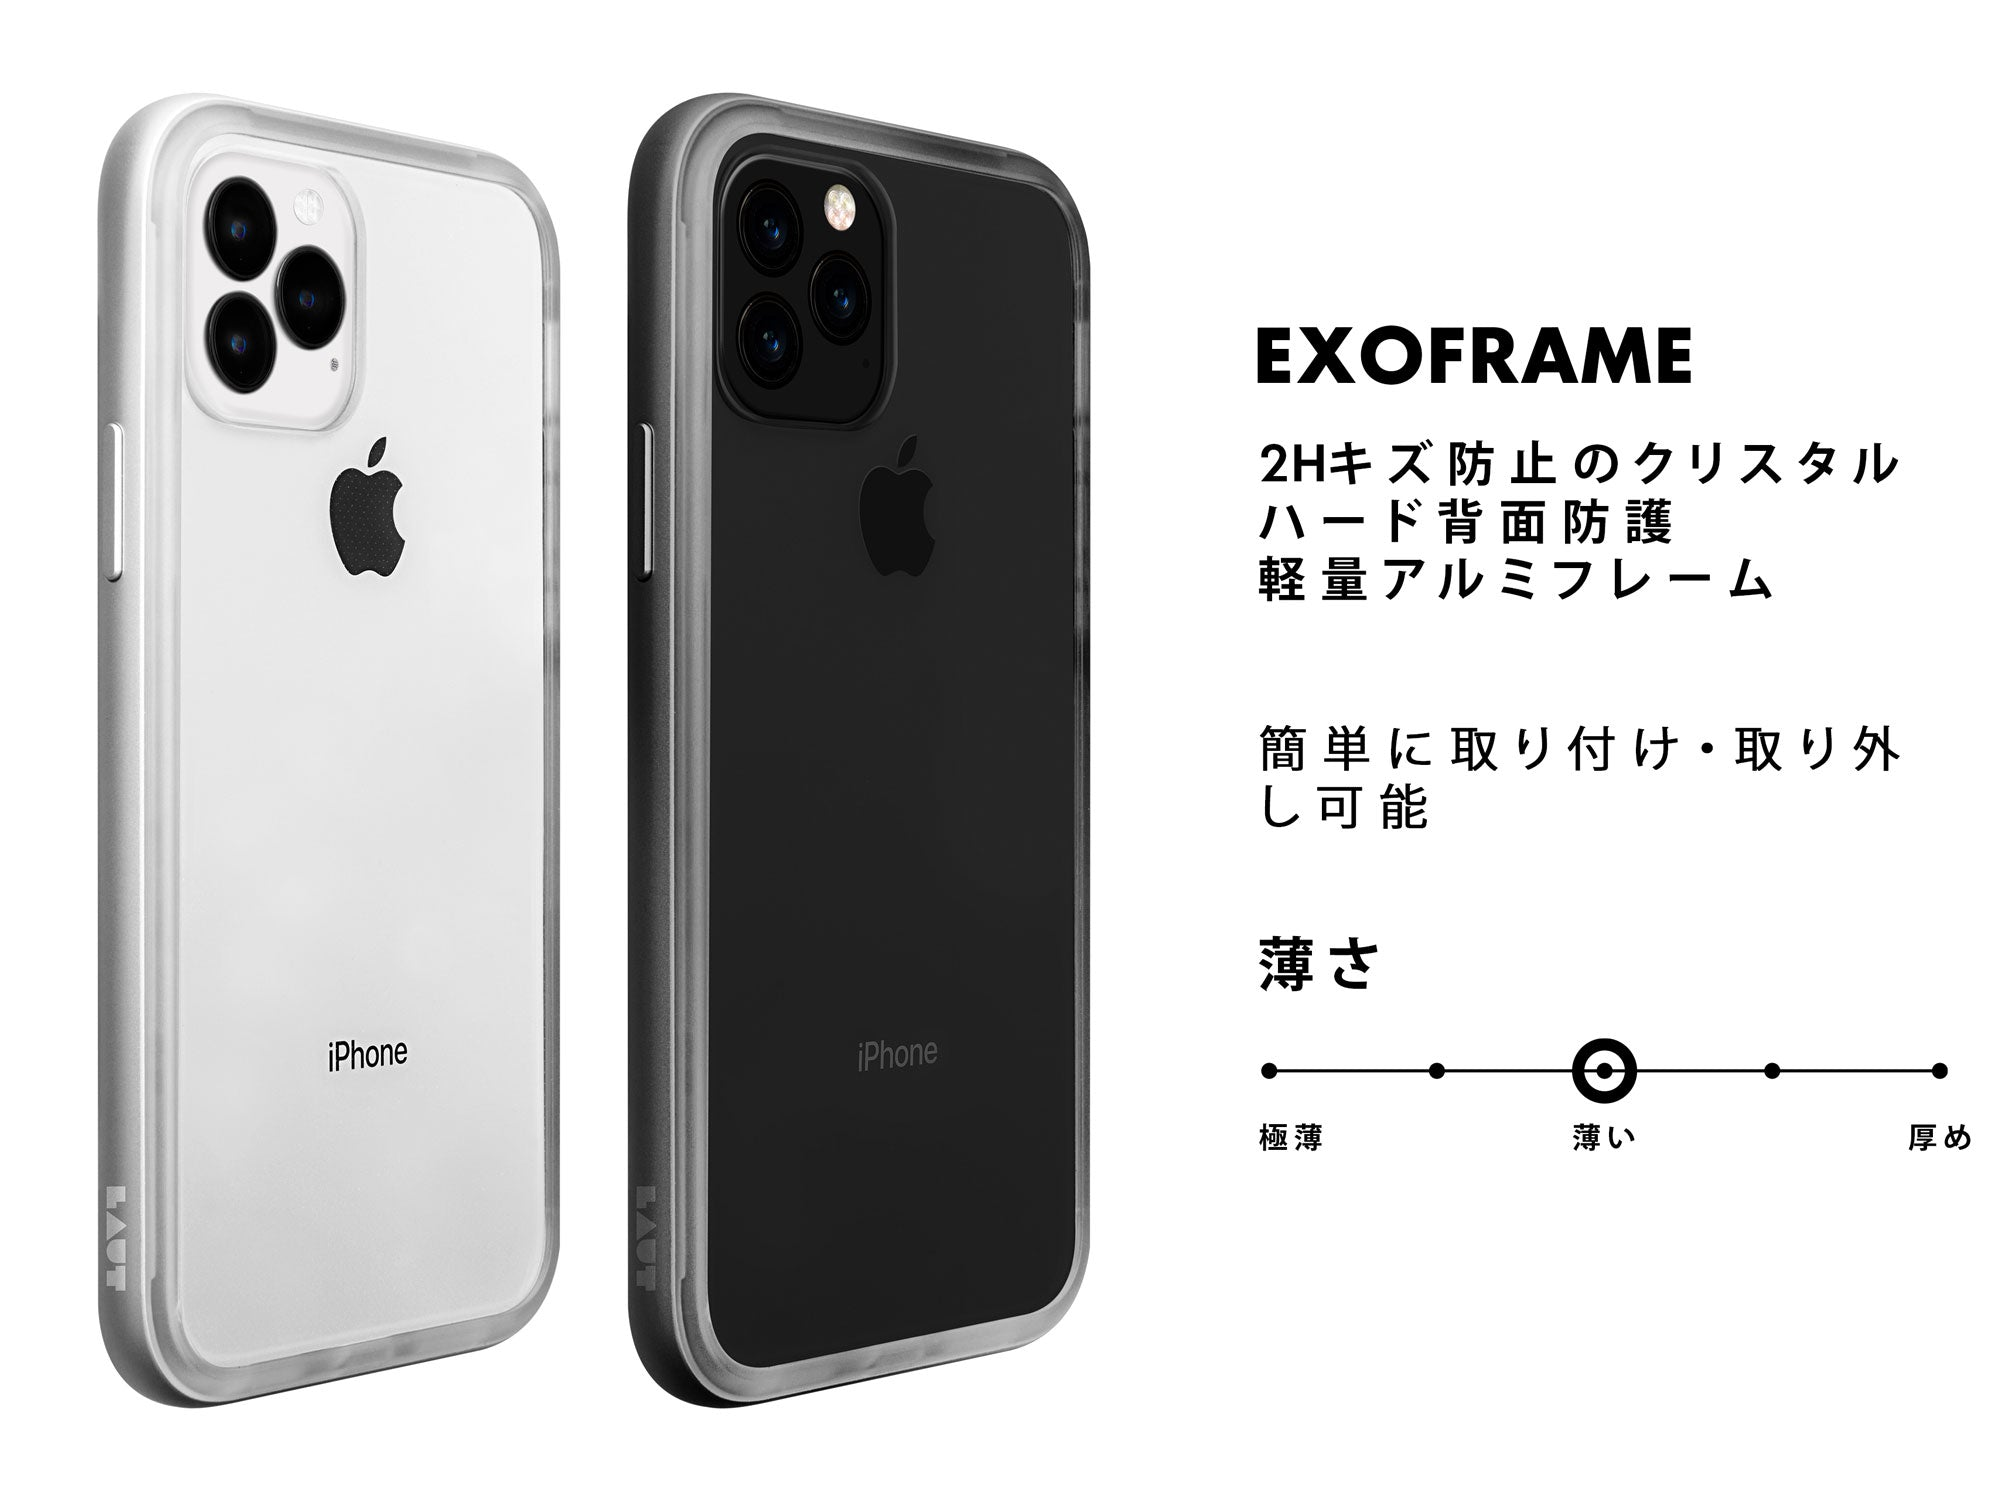 ExoFrame for iPhone 11 series